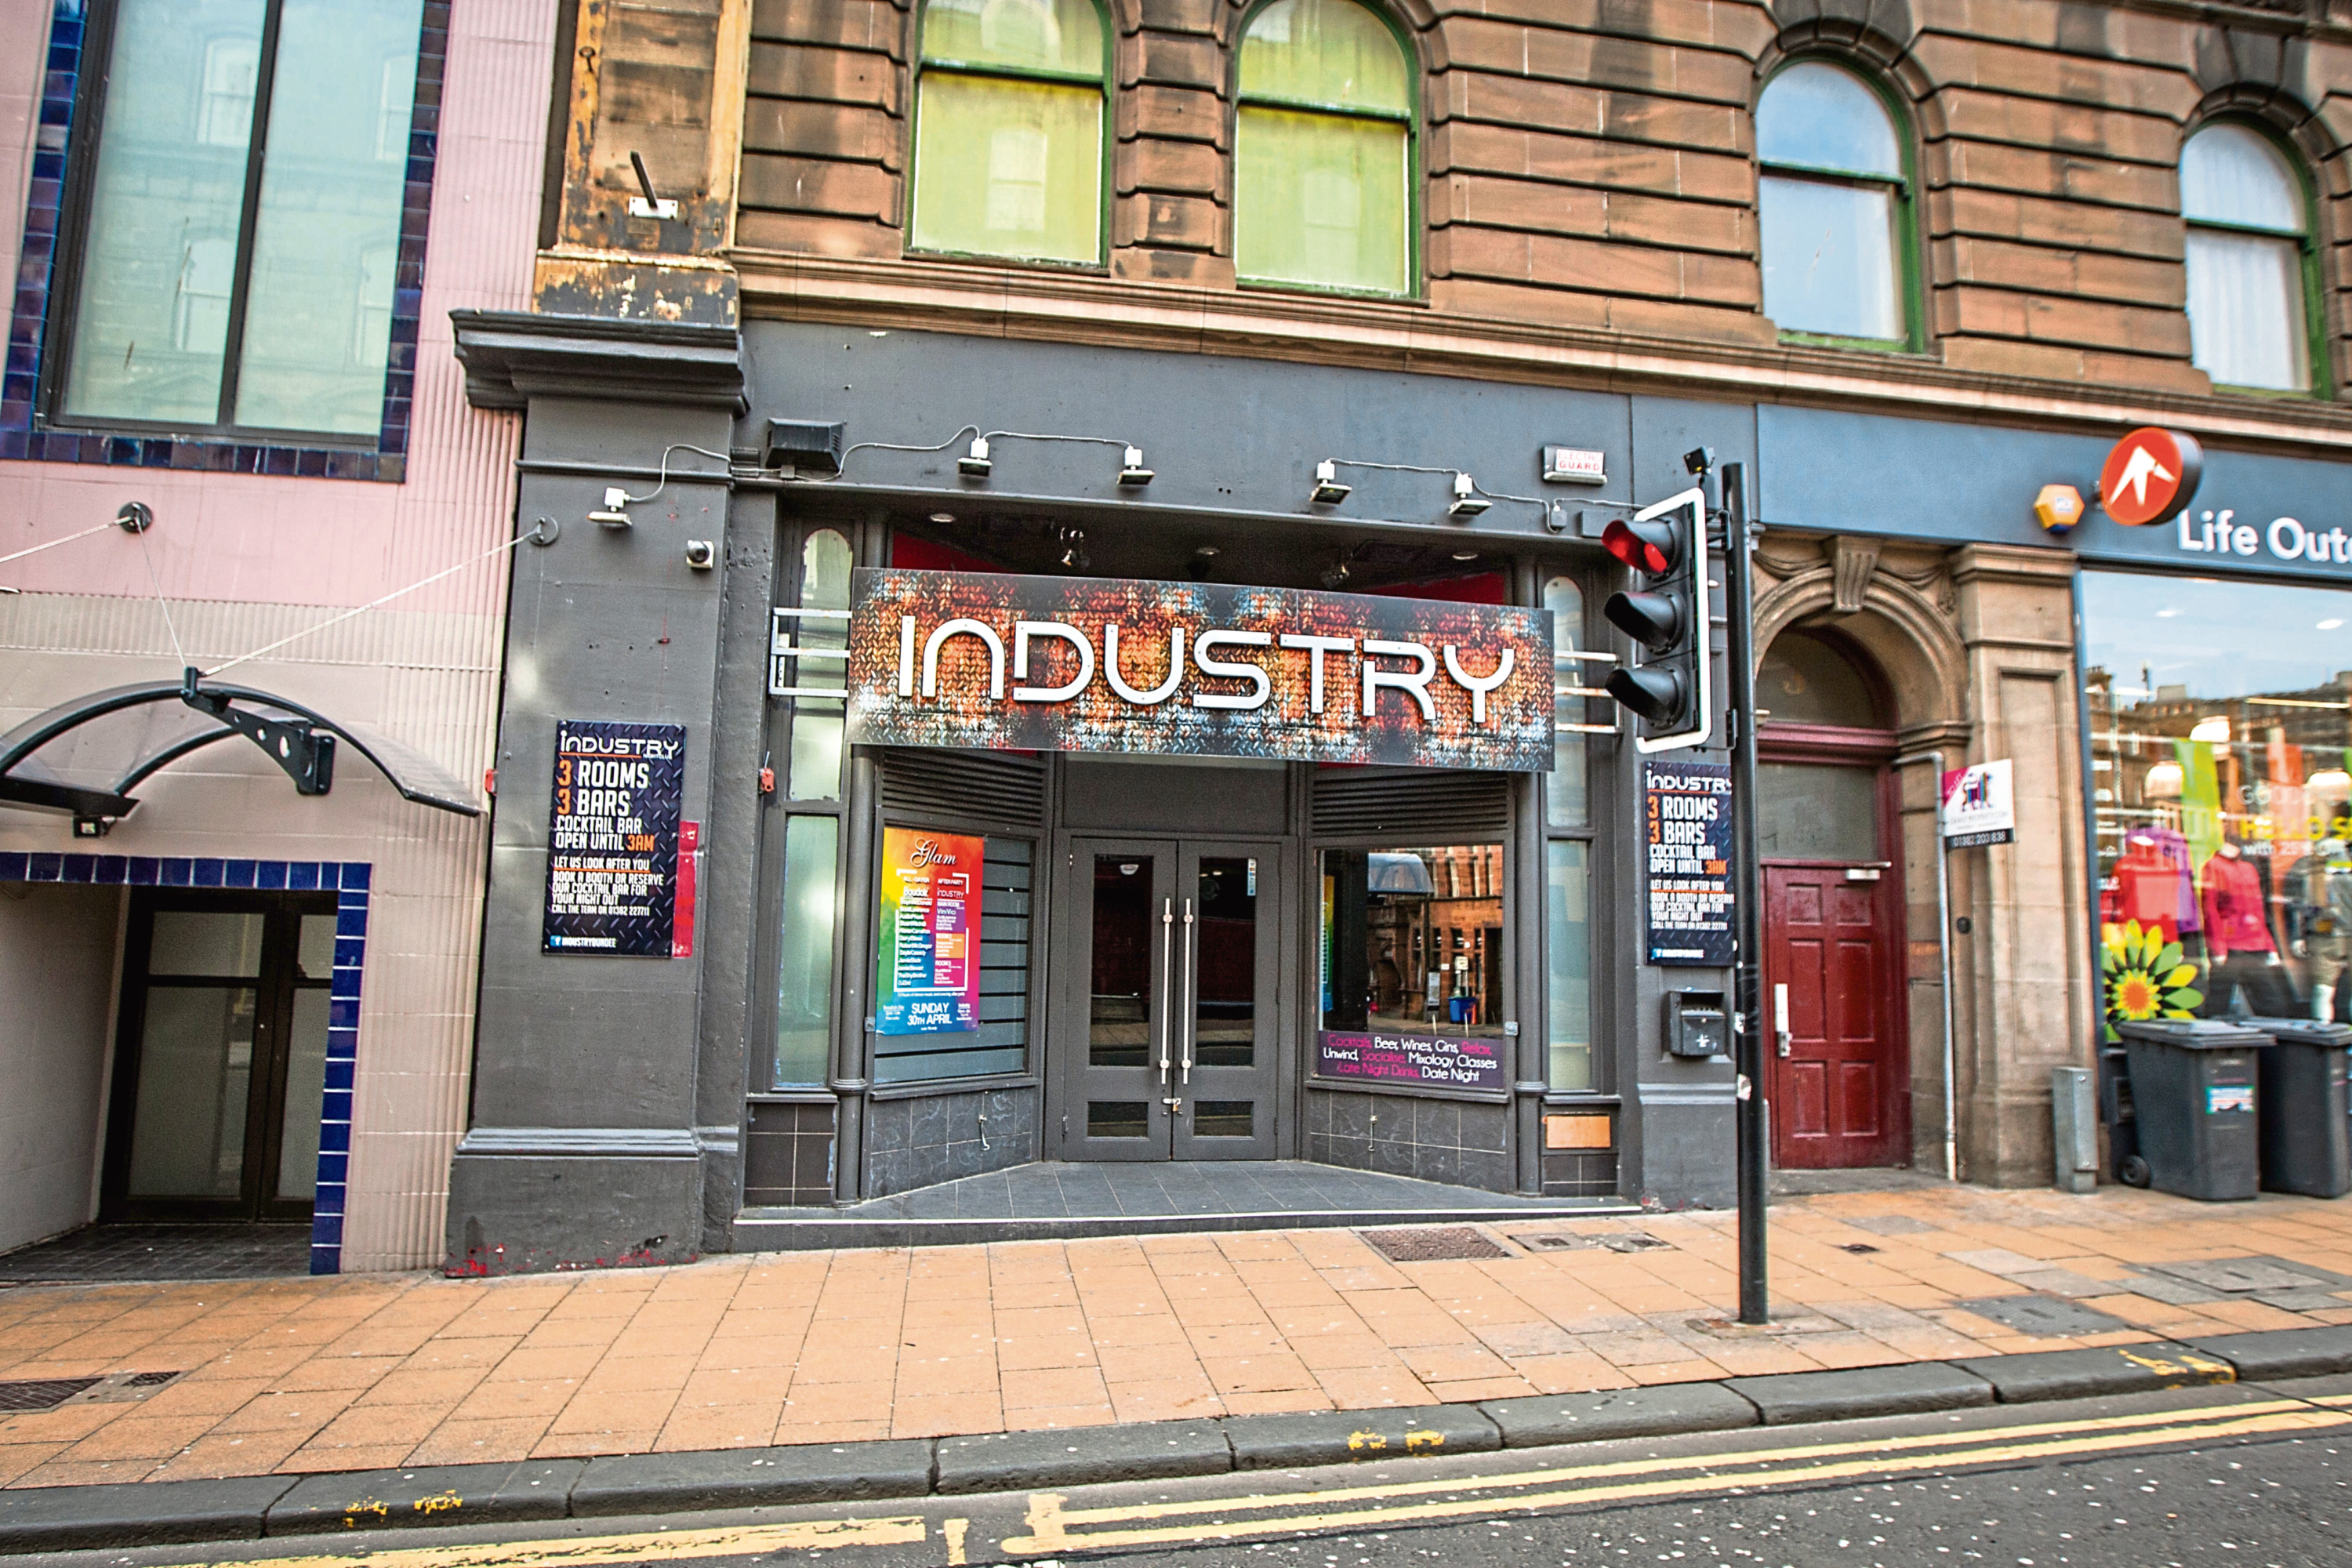 Industry nightclub in the Seagate is the target of a lapdancing bid.